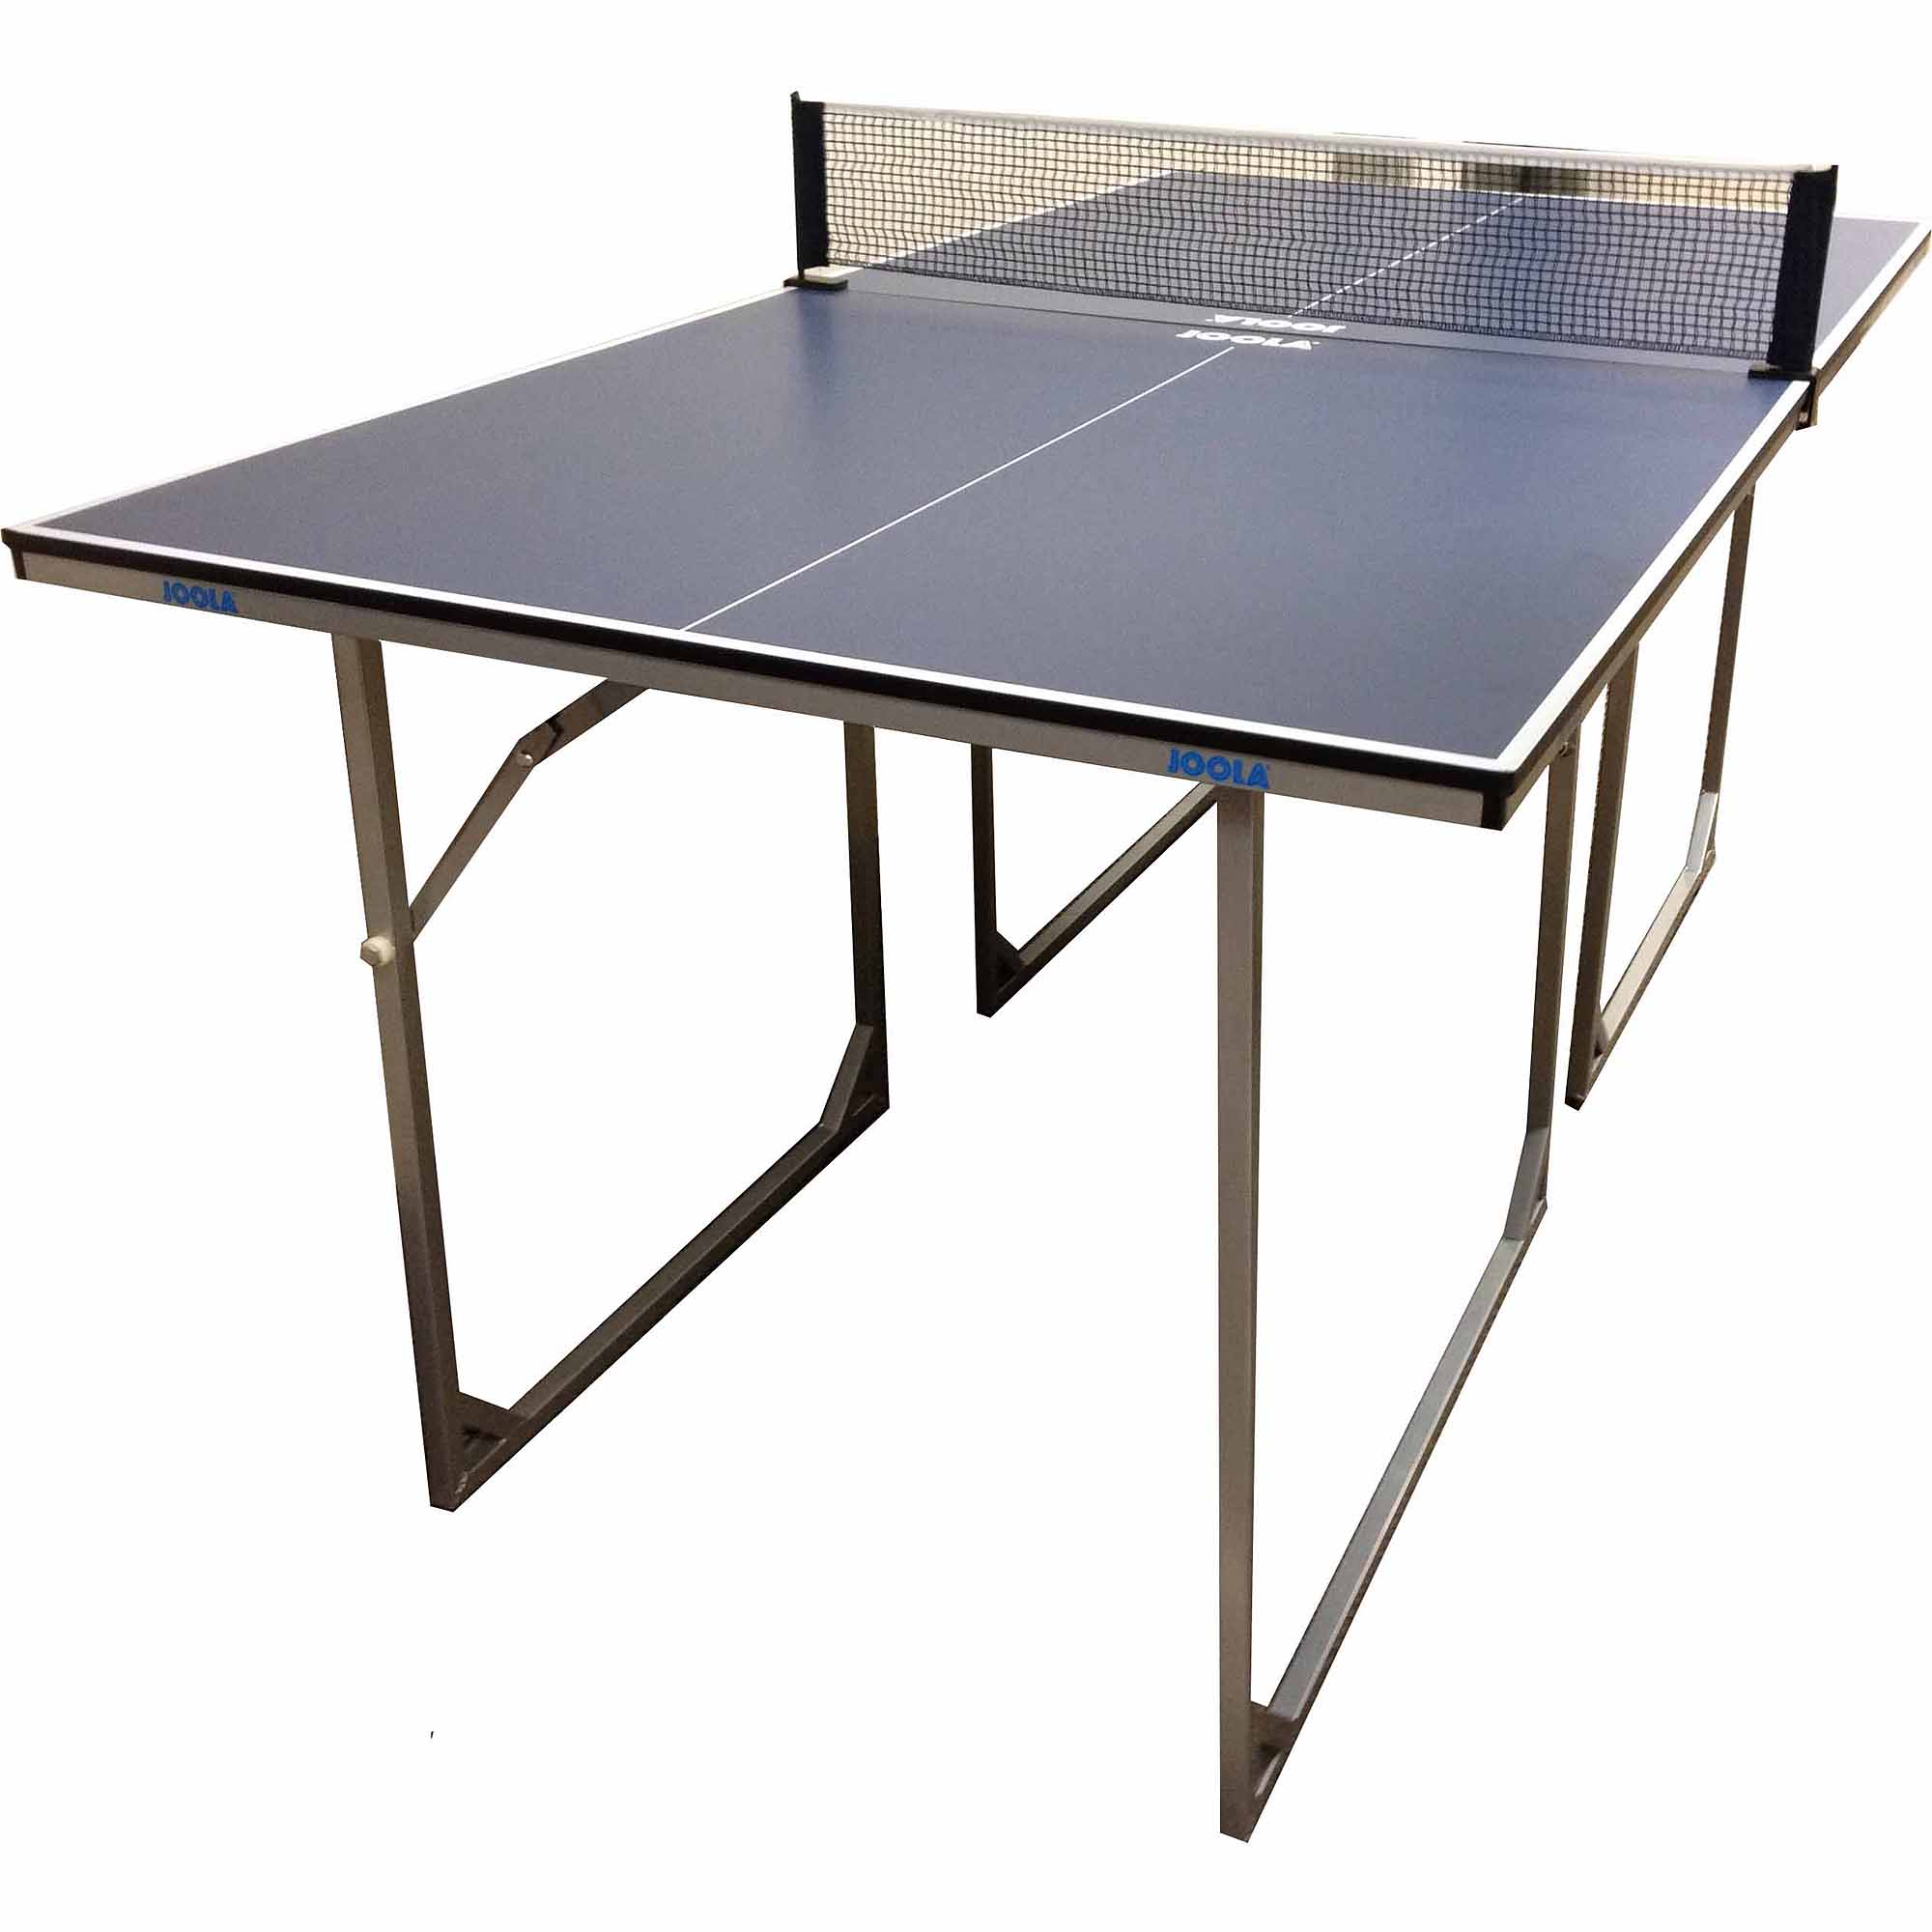 Superbe JOOLA Midsize Table Tennis Table